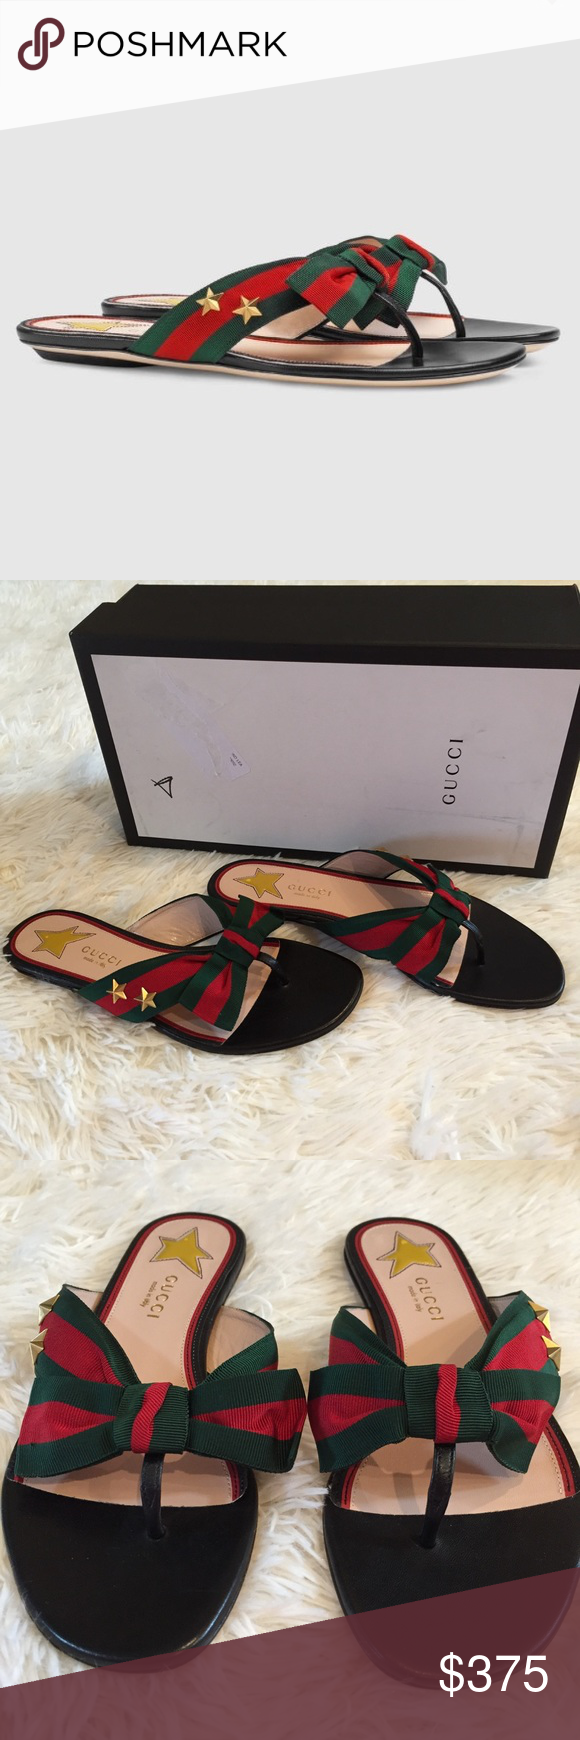 c4d5179dfef Gucci Star Studded Grosgrain Web Thong Sandals Size 36.5 (6.5) fit TTS.  Gucci